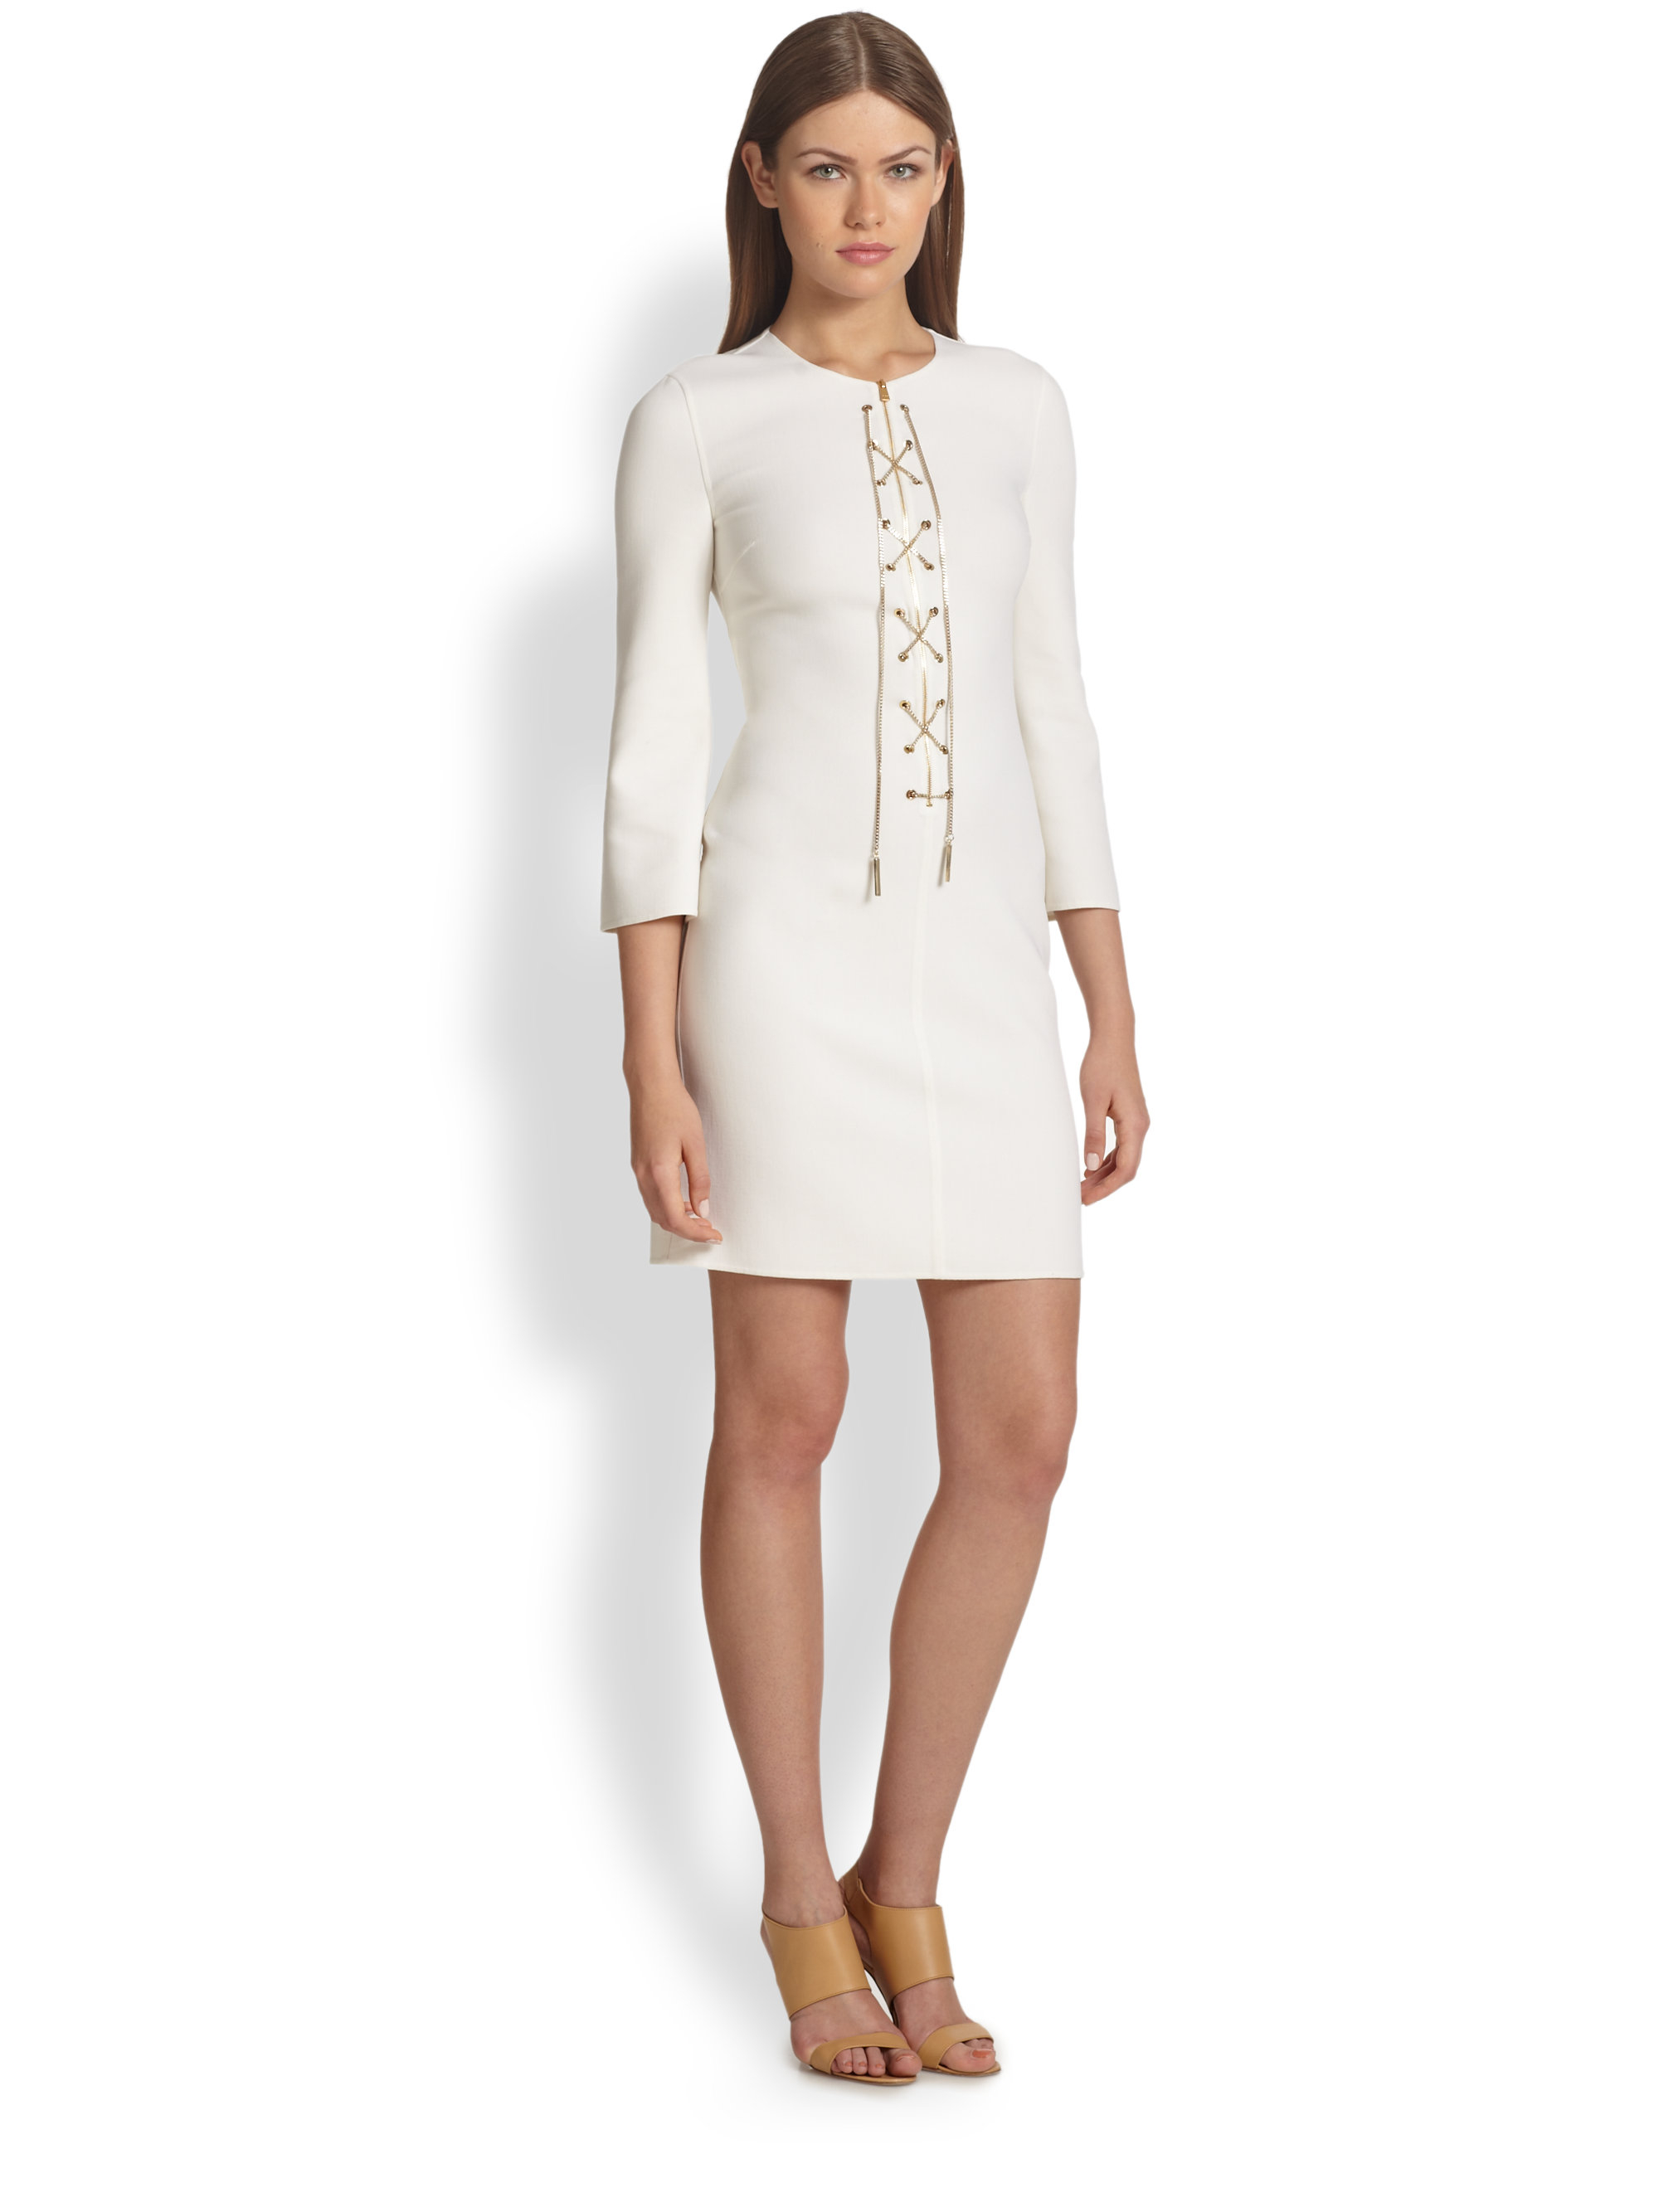 Michael kors white dress images